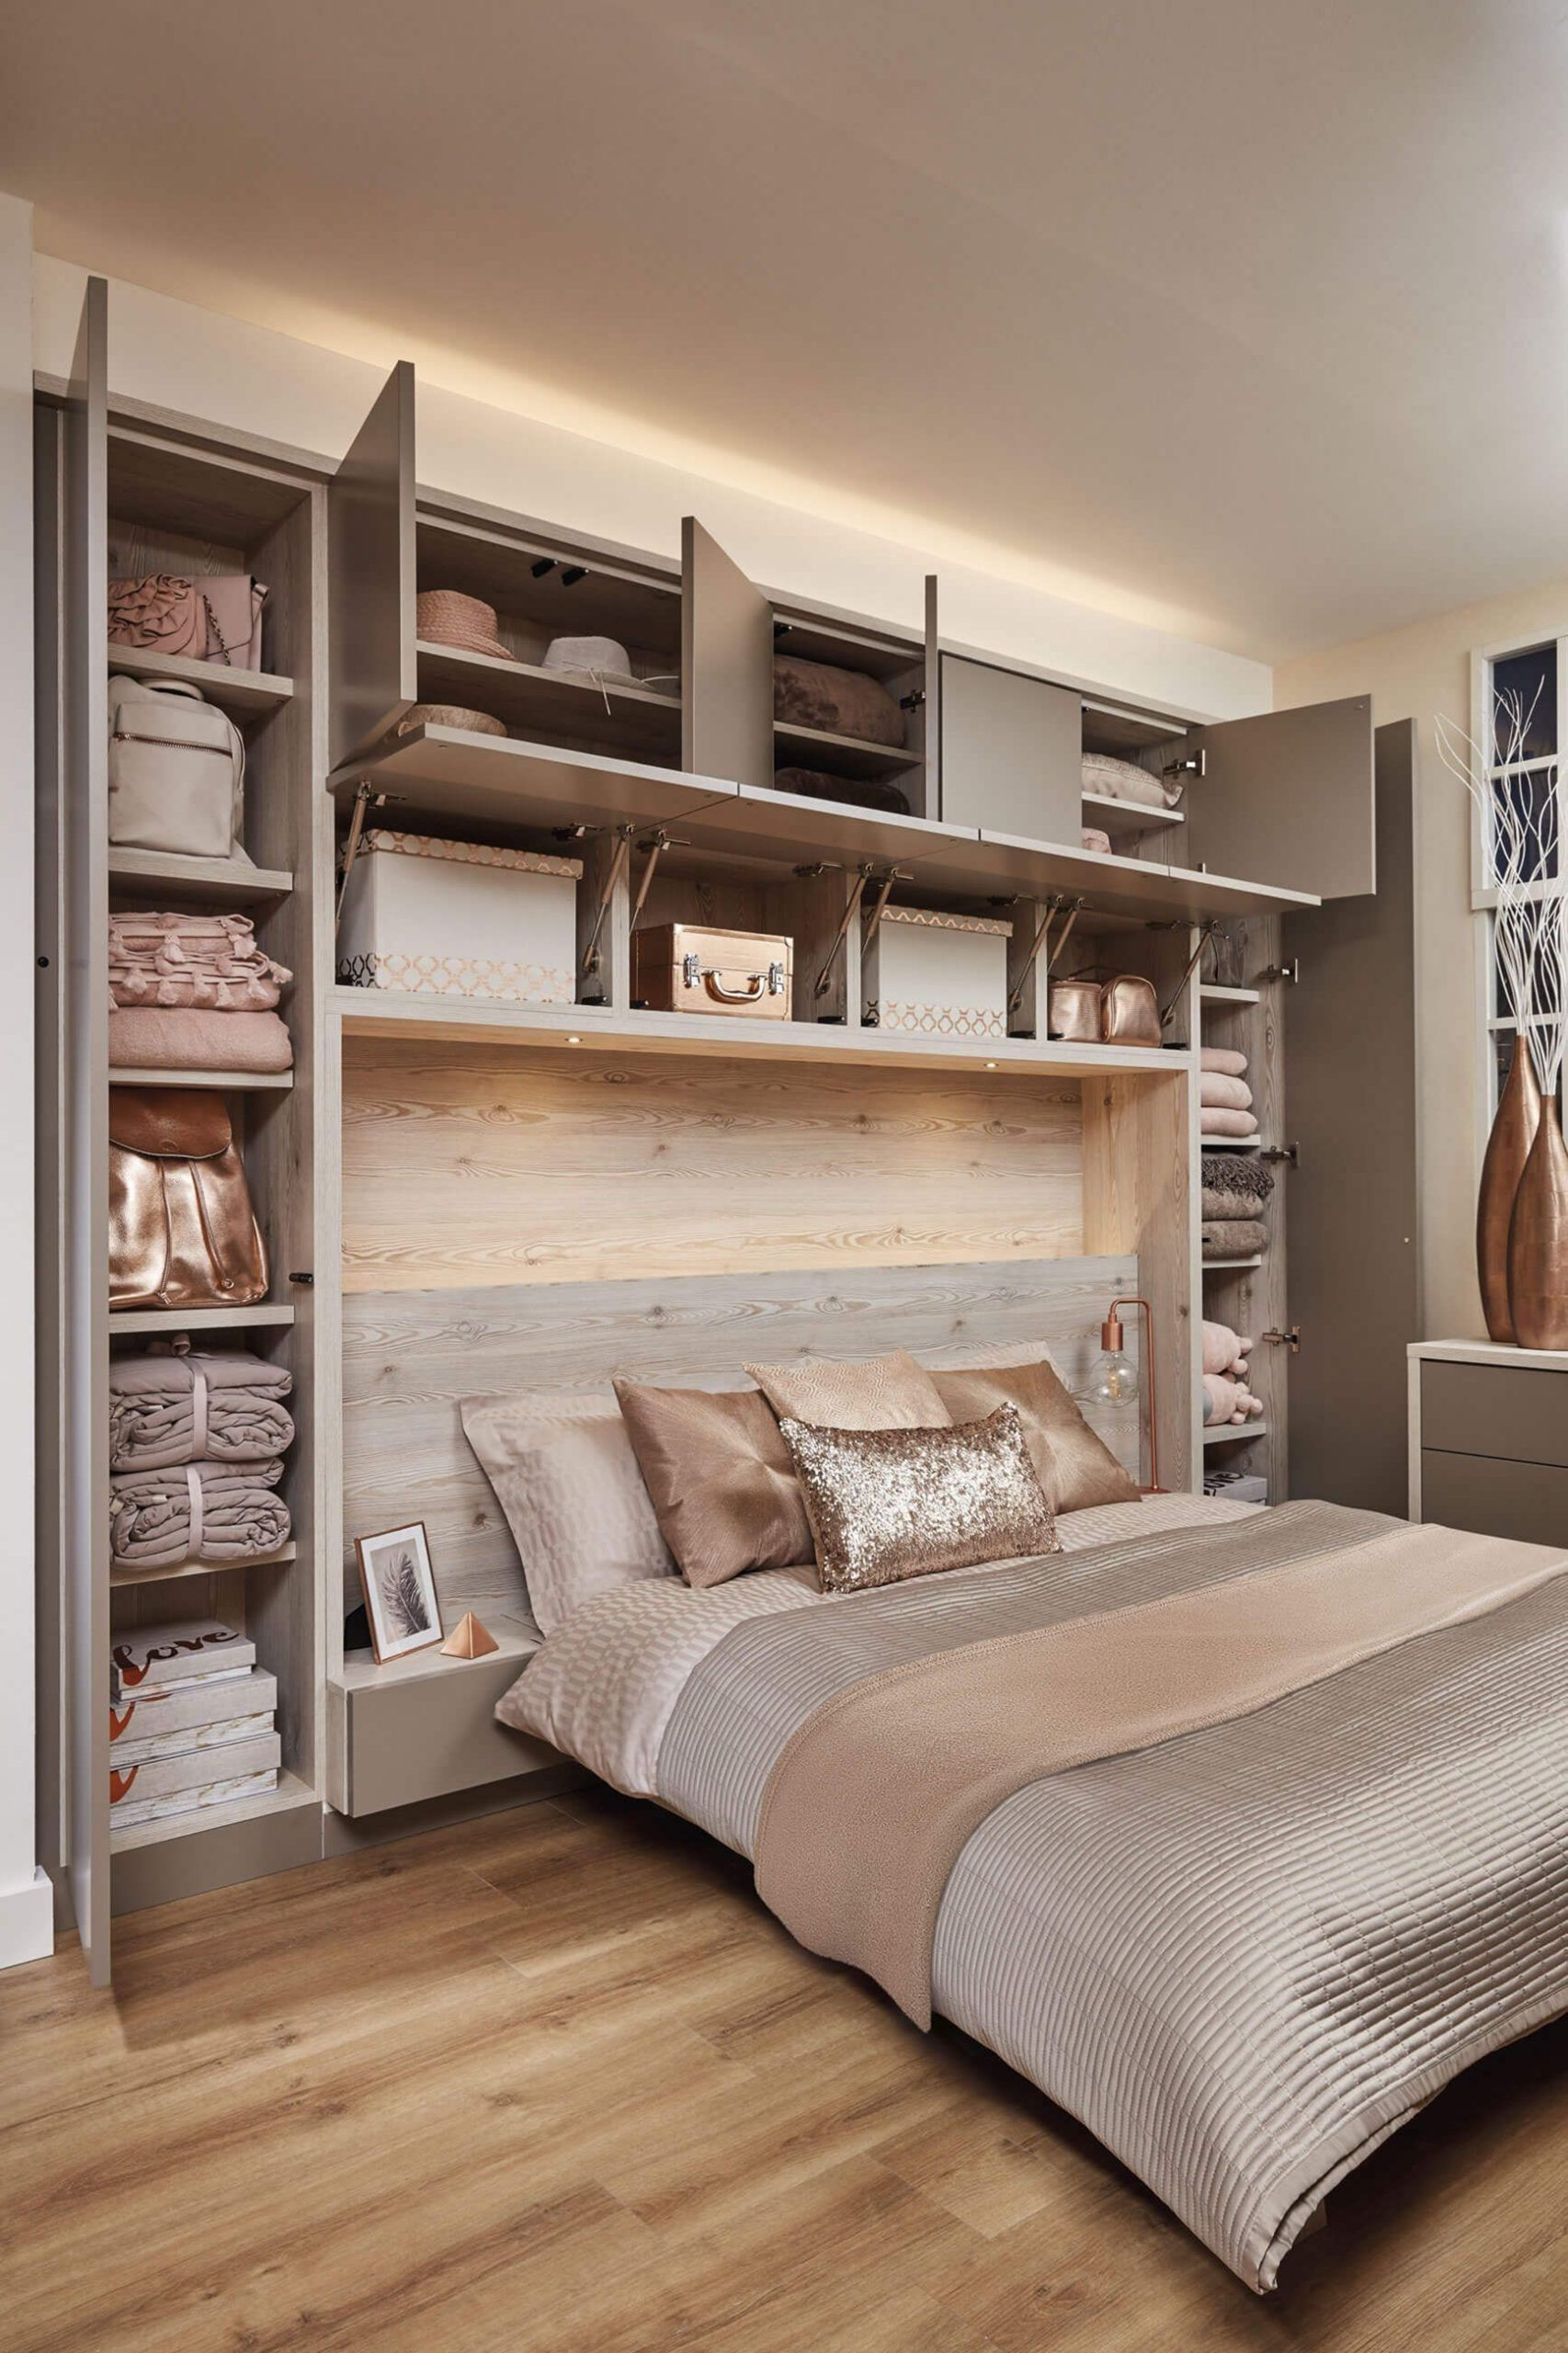 10 Simple Narrow Bedroom Designs You Must Try In Your Small House Fitted Bedroom Furniture Fitted Bedrooms Bedroom Furniture Design